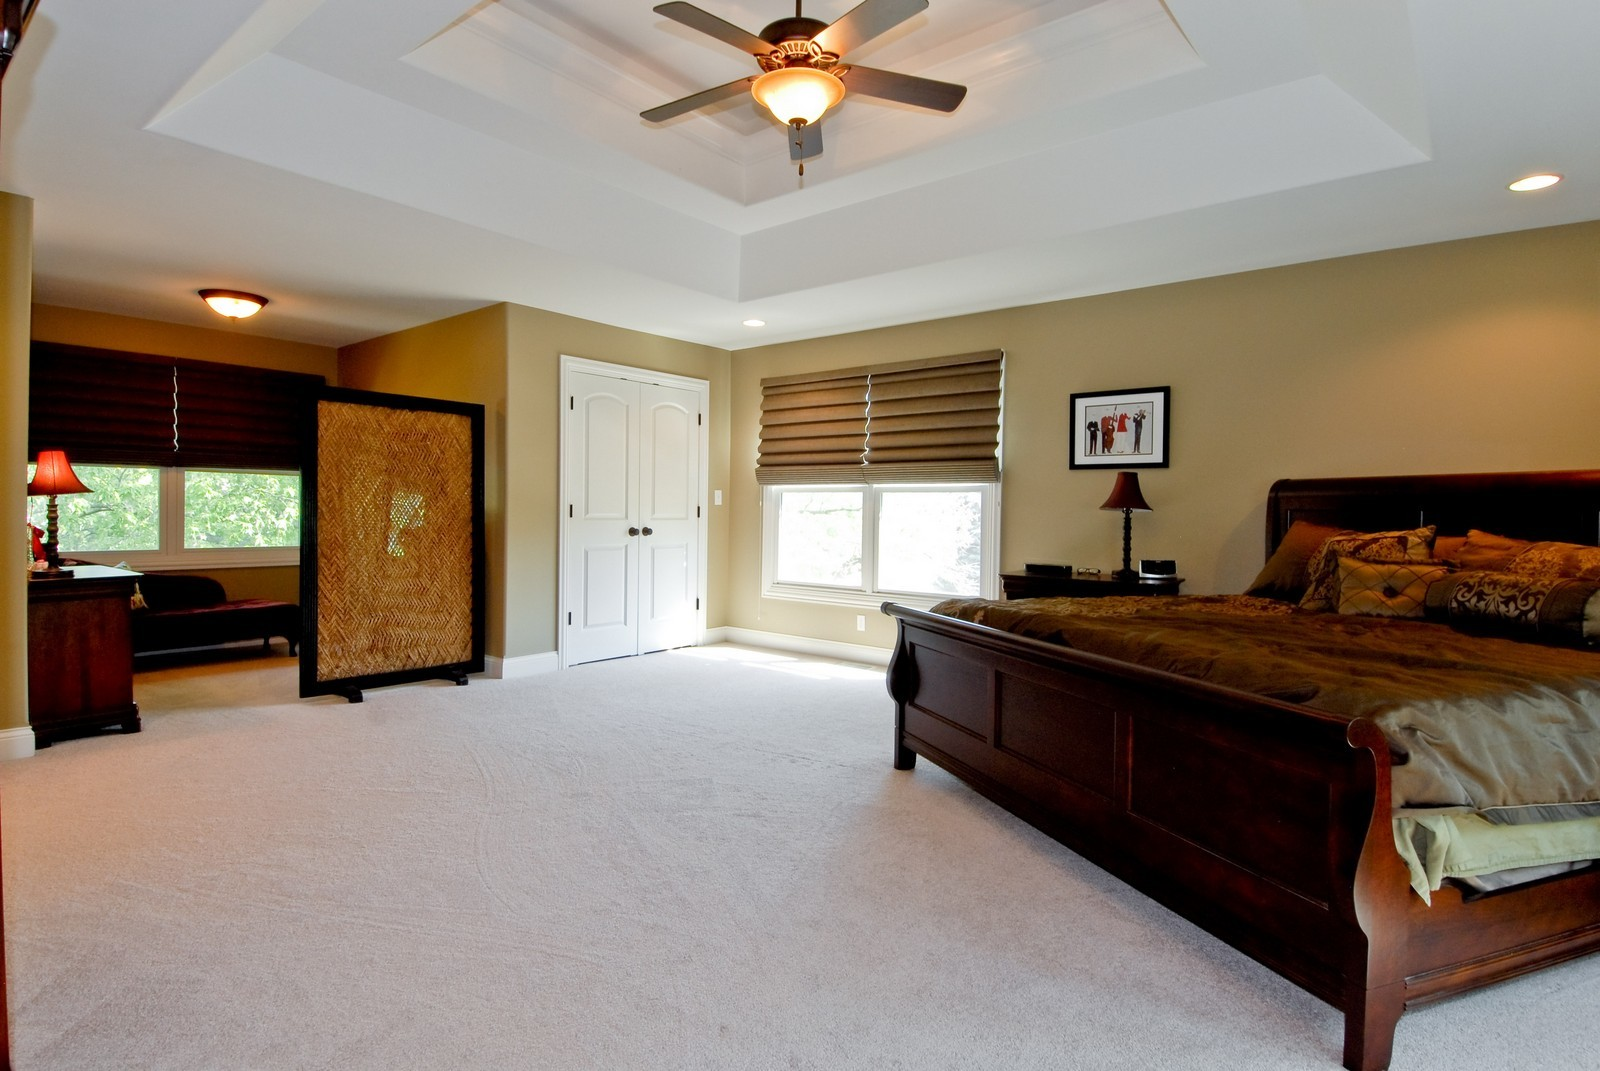 Real Estate Photography - 1221 Wing Ave, St. Charles, IL, 60174 - Master Bedroom